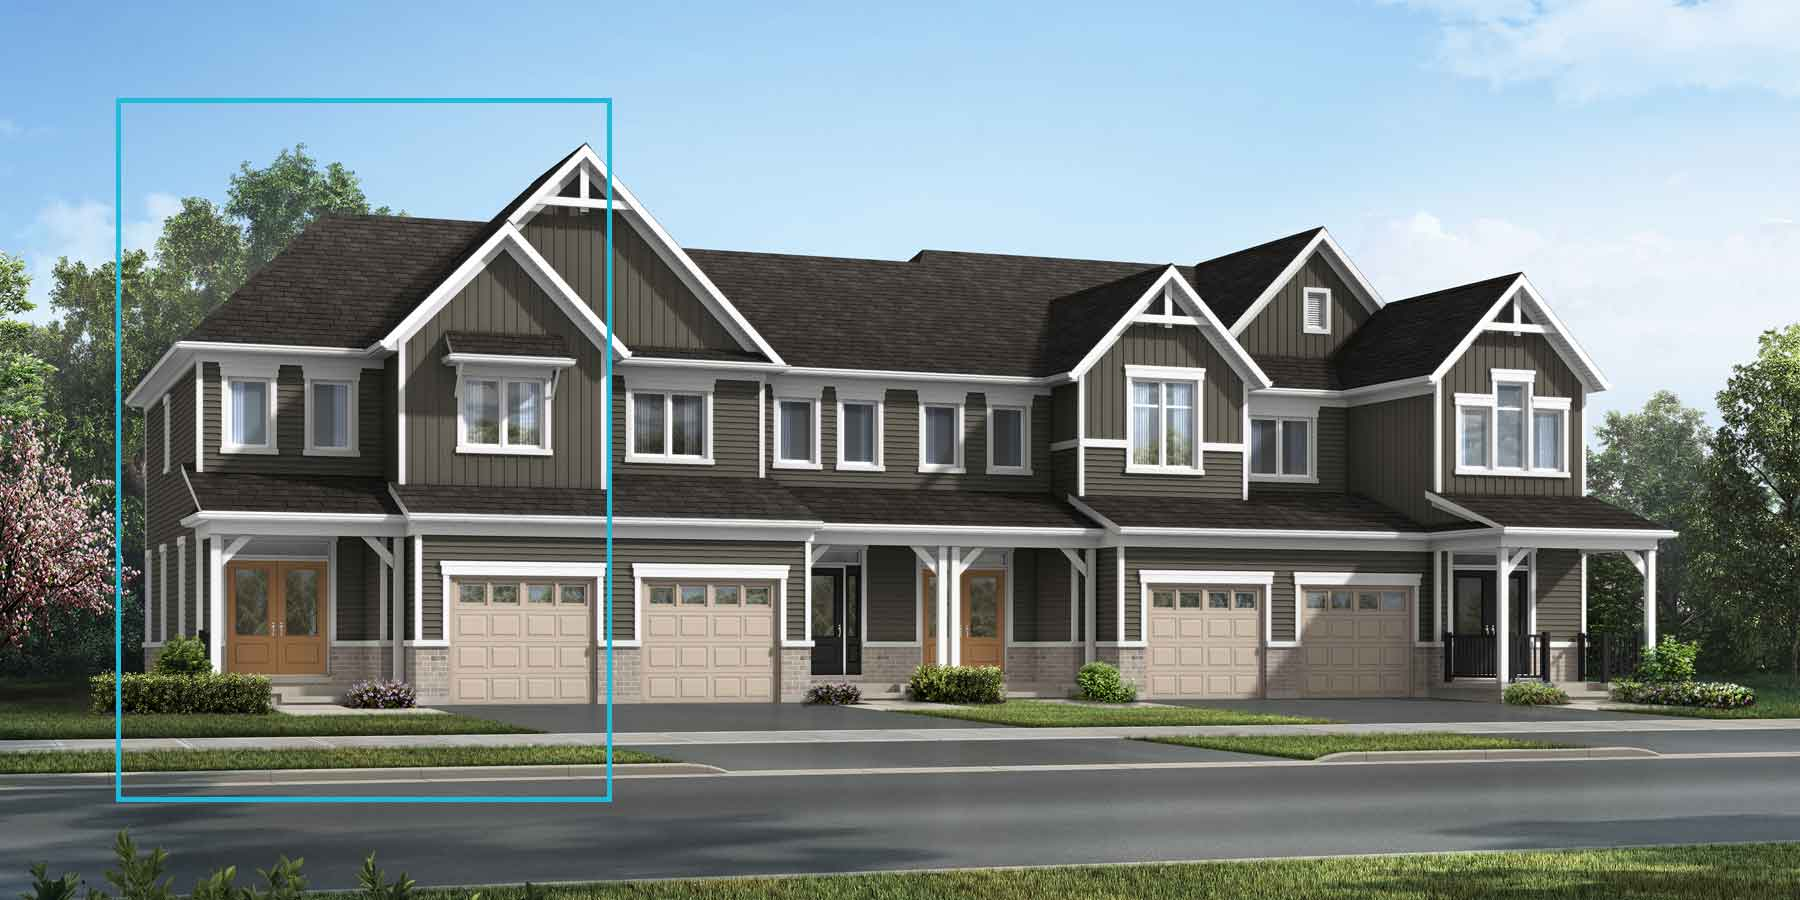 The Millbank End Plan TownHomes at Wildflower Crossing in Kitchener Ontario by Mattamy Homes